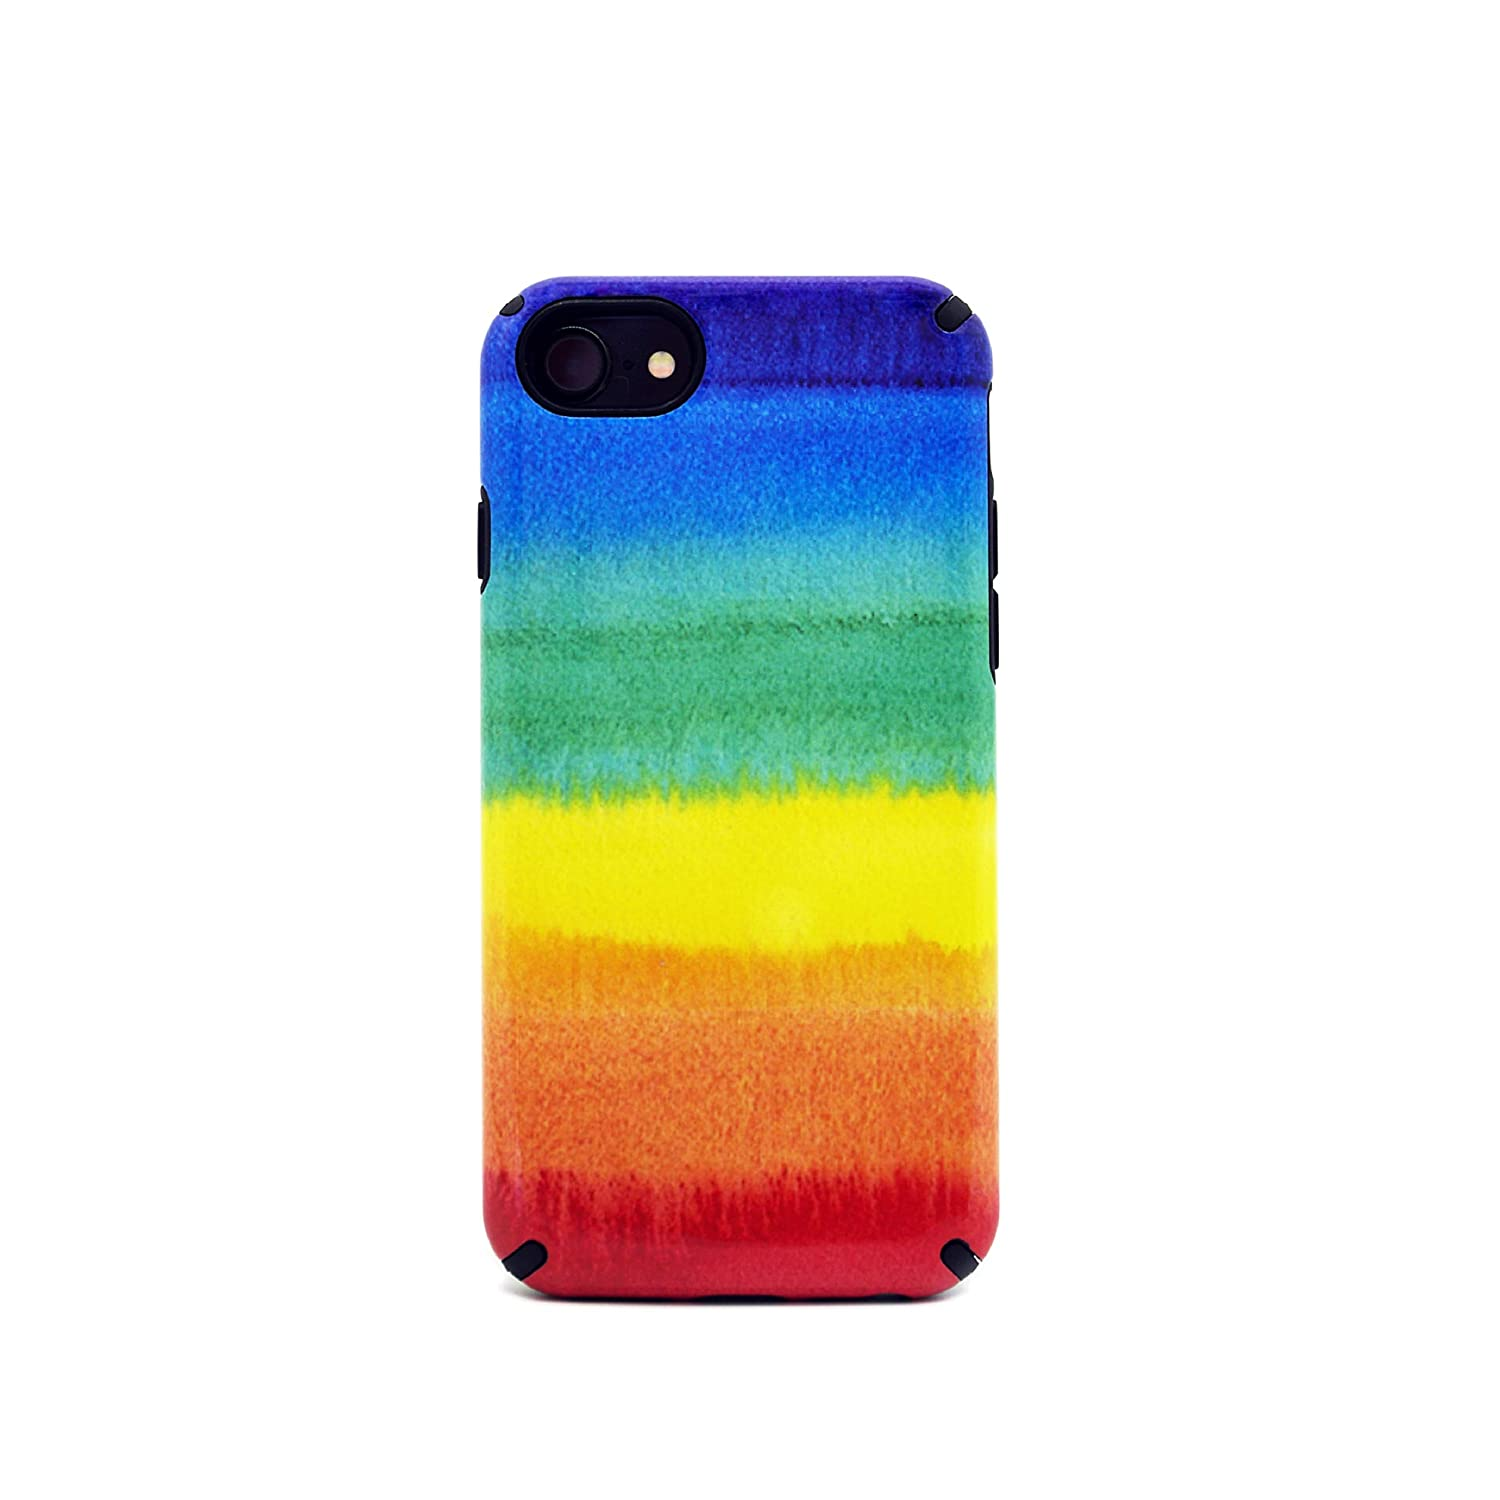 save off 585da 5f11d Rainbow case Compatible with Apple iPhone 7/8 Plus Case, LGBT Slim Dual  Layer Scratch Protective Case Fit for Apple iPhone Hybrid Hard Back Cover  and ...